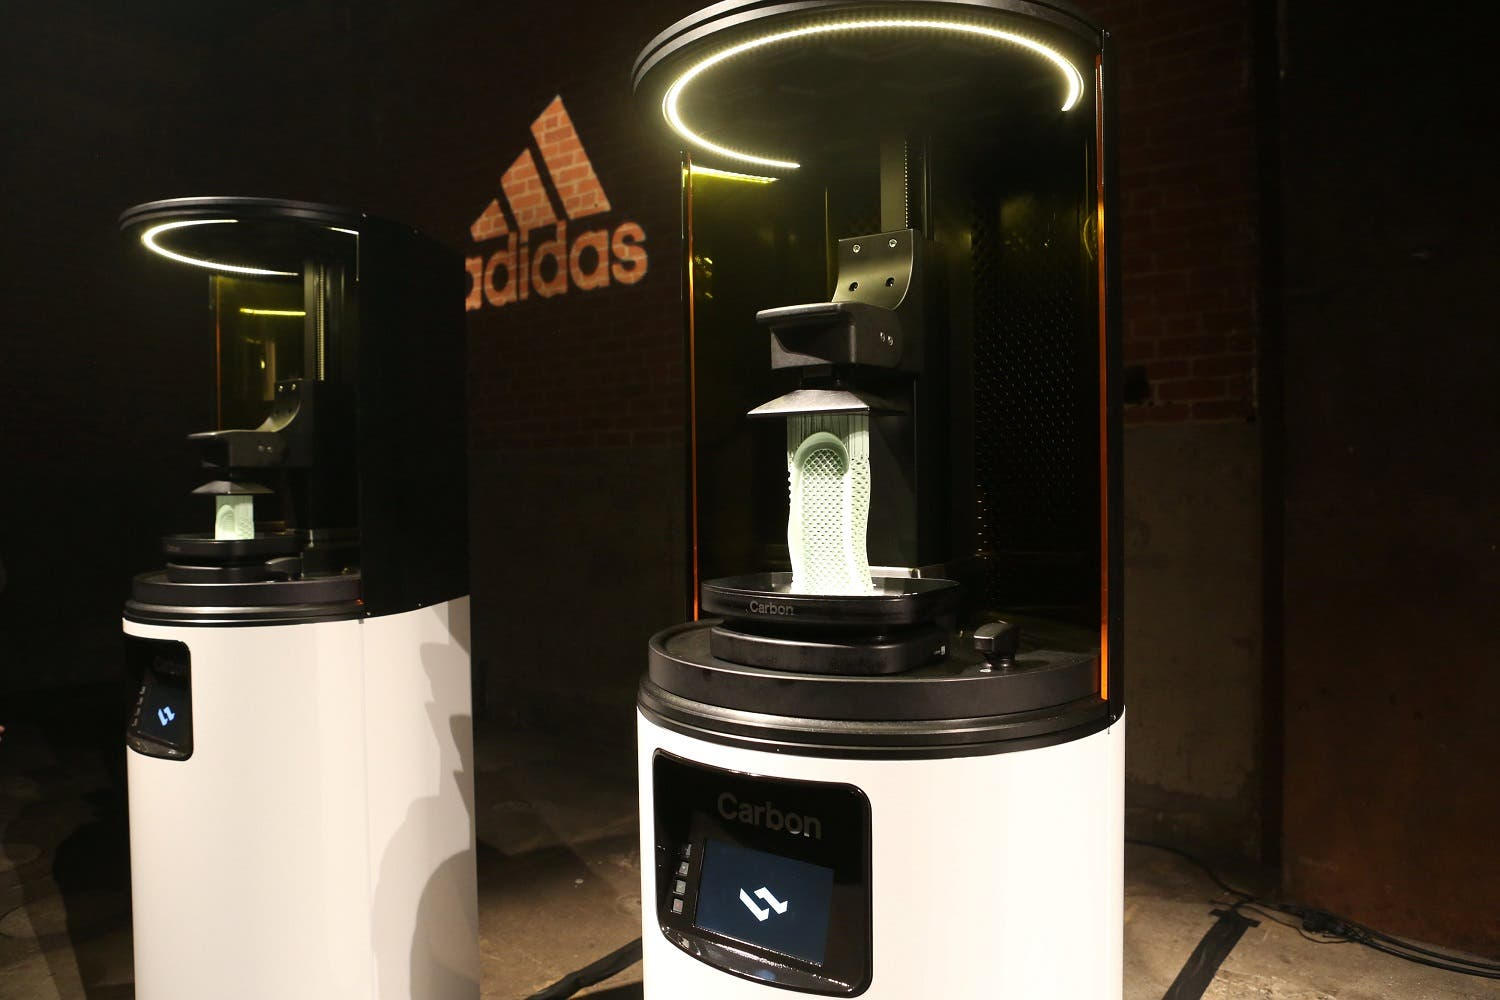 Carbon 3D printing machines are seen at an unveiling event for the new Adidas Futurecraft shoe in New York City, on April 6, 2017. (Reuters)